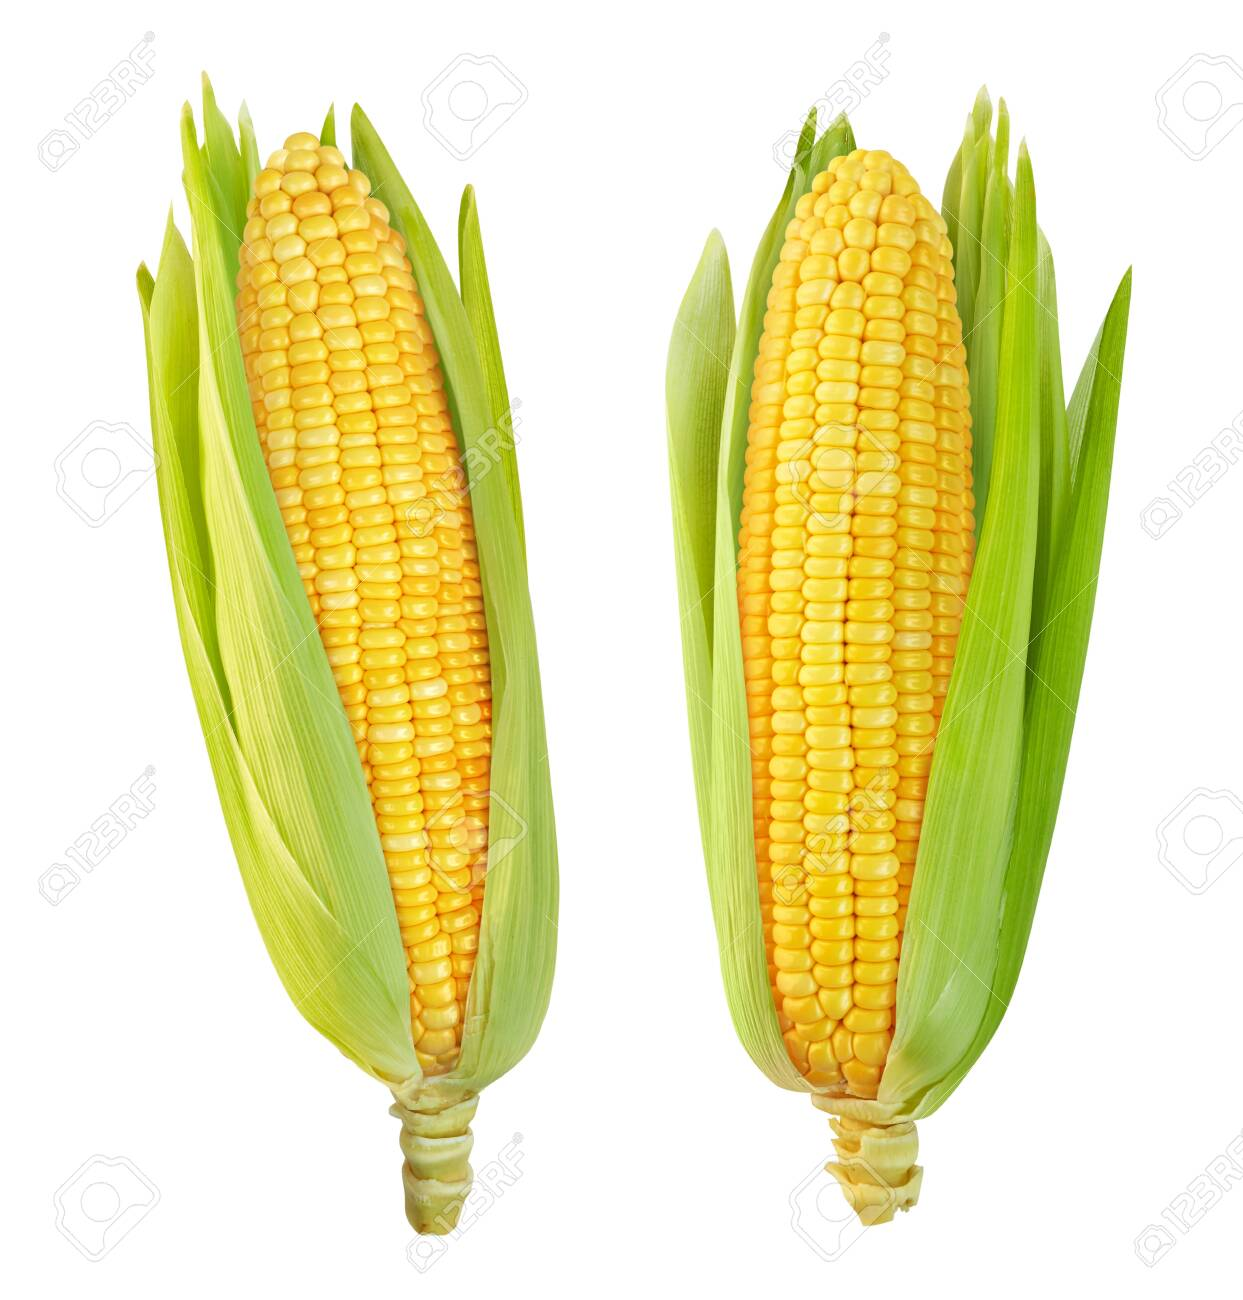 Corn isolated on a white background - 151108424